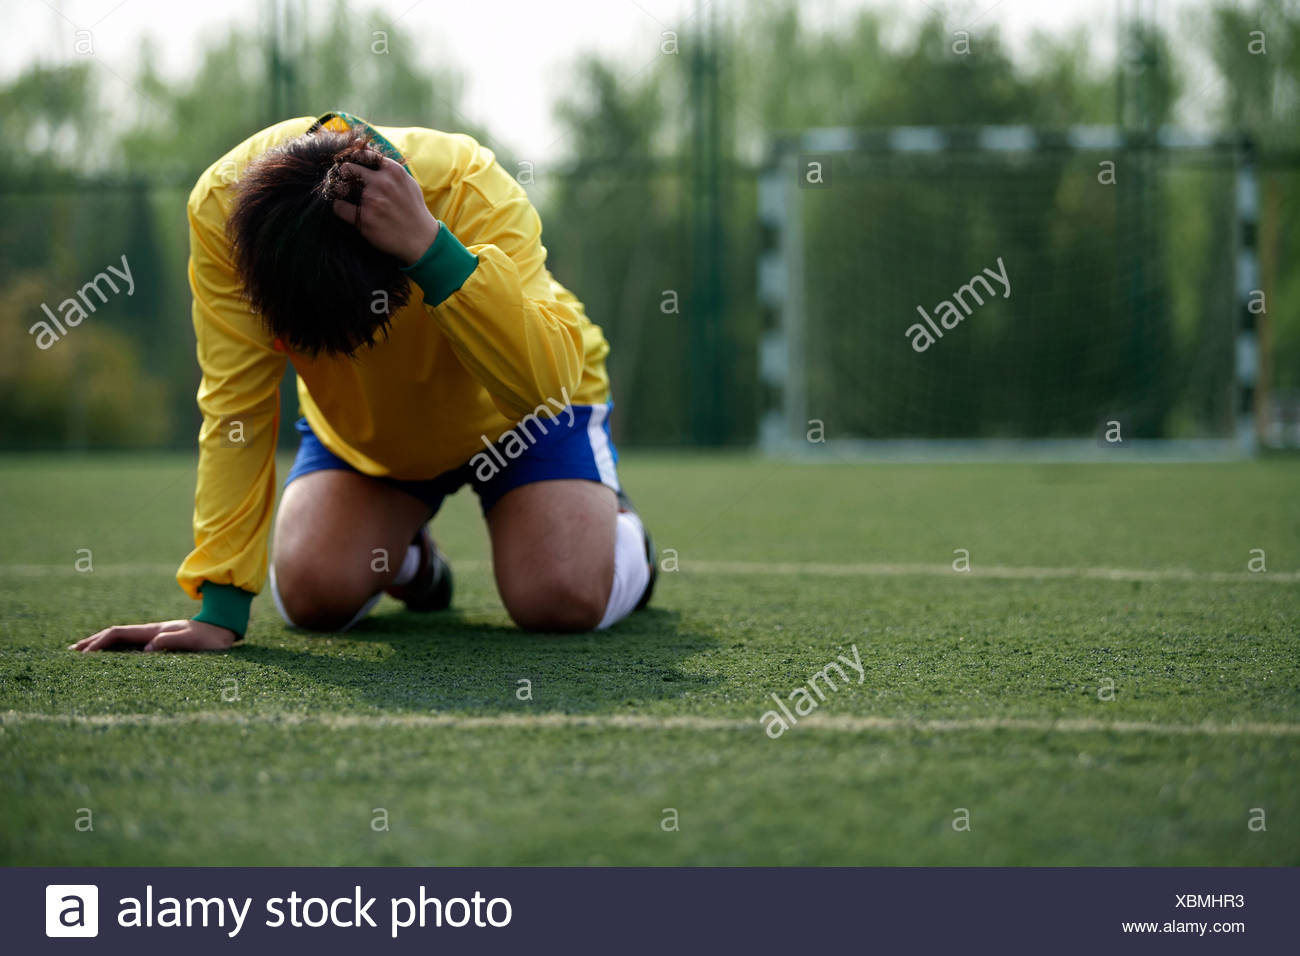 Disappointed Soccer Player On His Knees - Stock Image